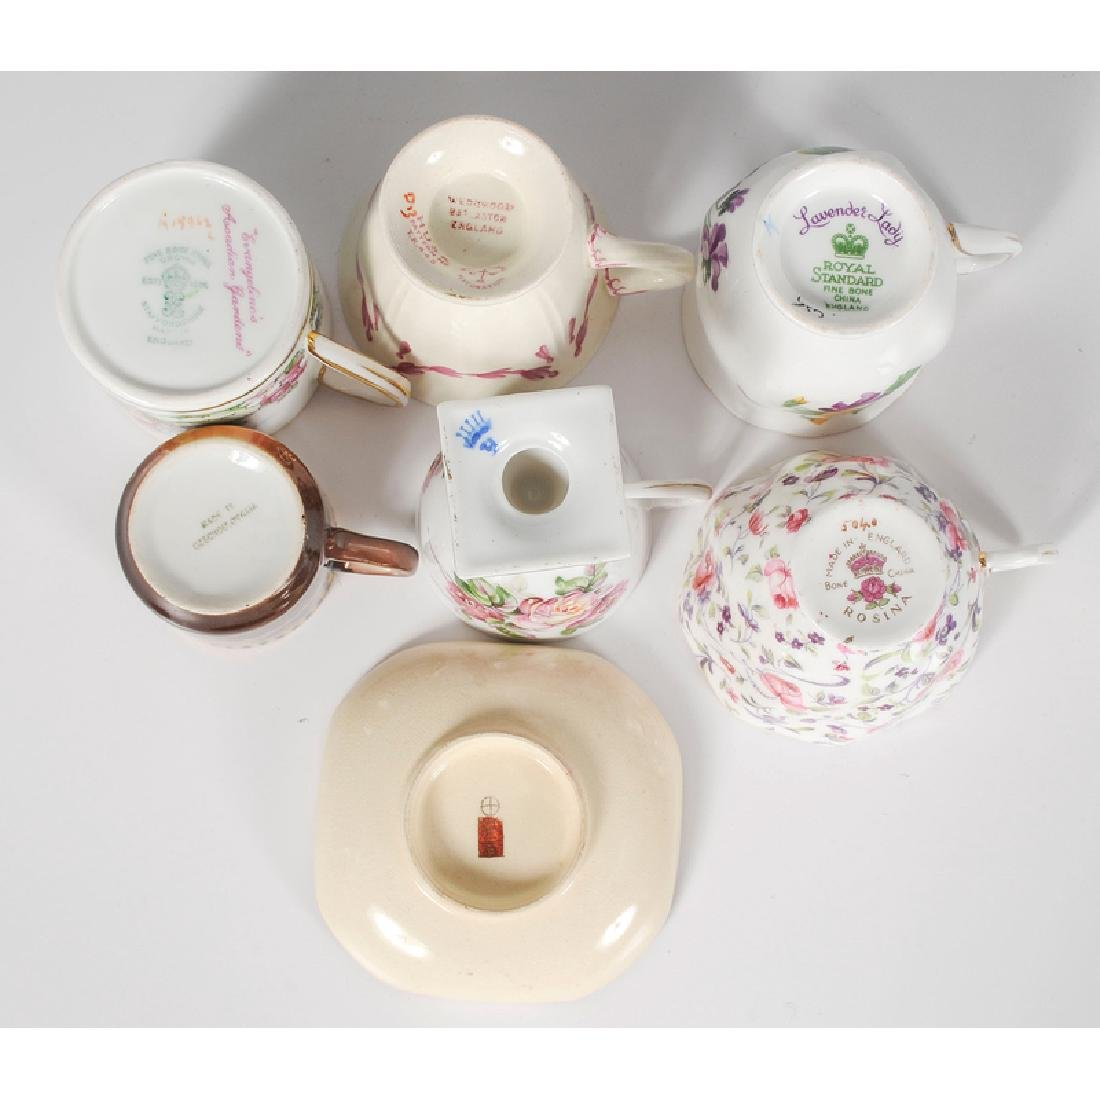 Assorted Collection of Teacups and Saucers - 6